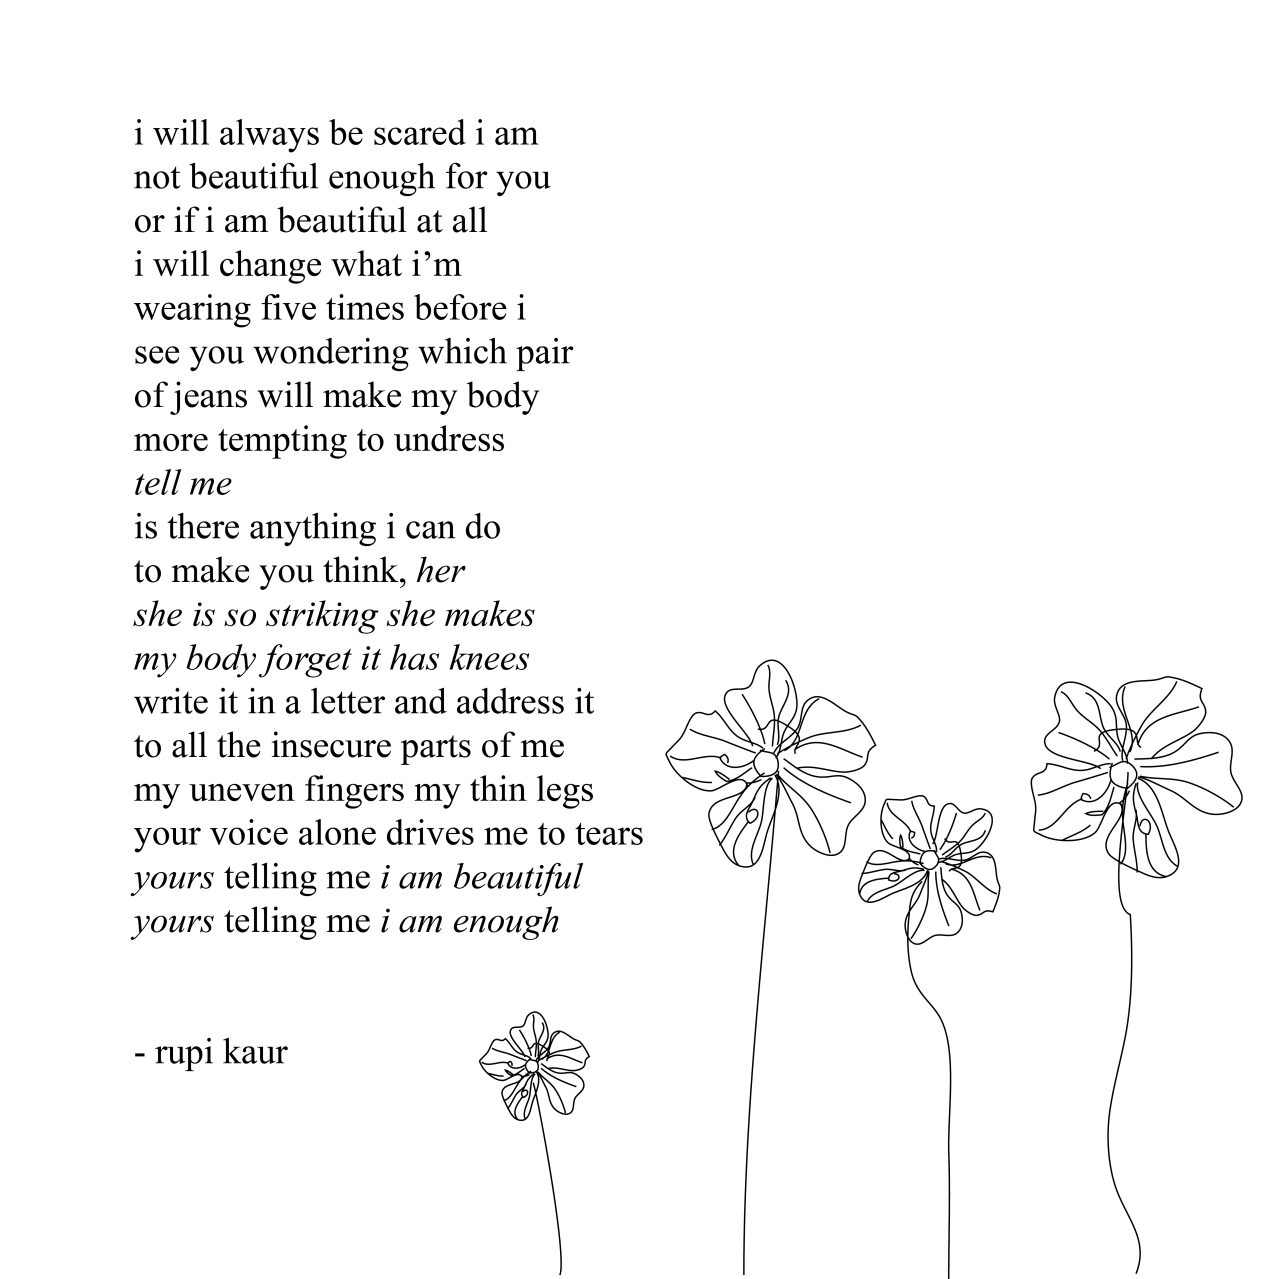 Quotes About Love Rupi Kaur : Rupi Kaur In A State Of Eunoia A Moment Like This